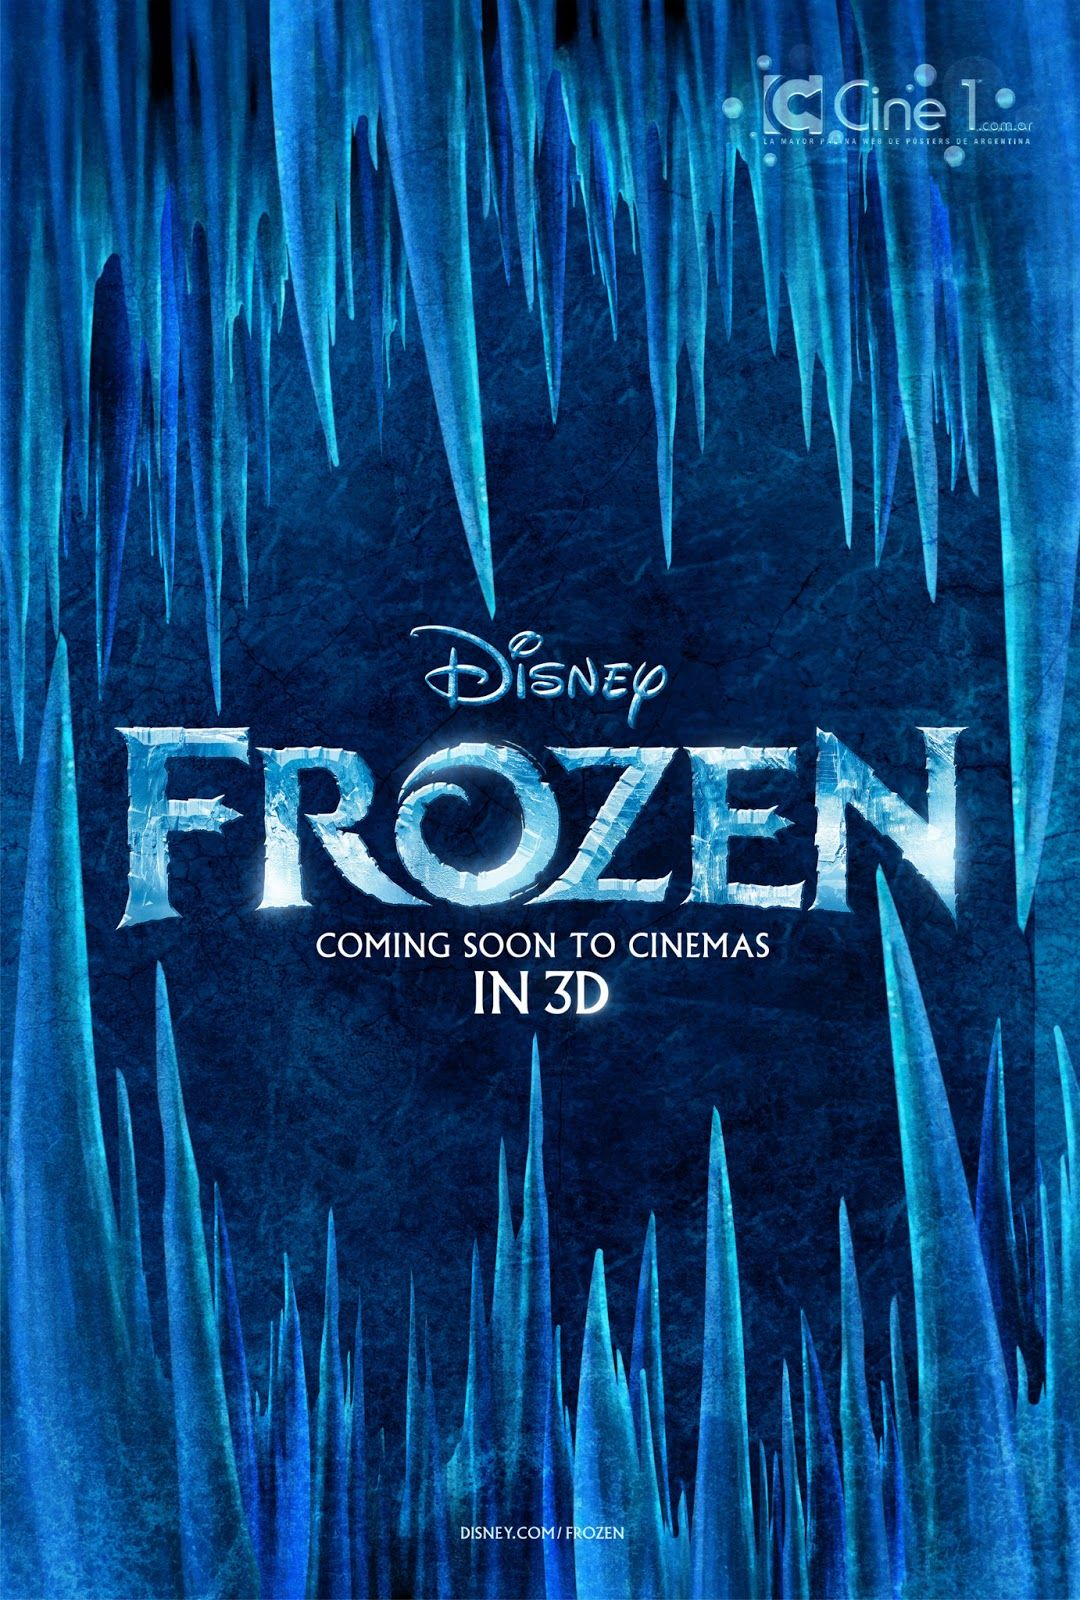 Frozen, Disney's next animated Feature!!!  CAN'T WAIT! #disneymovies